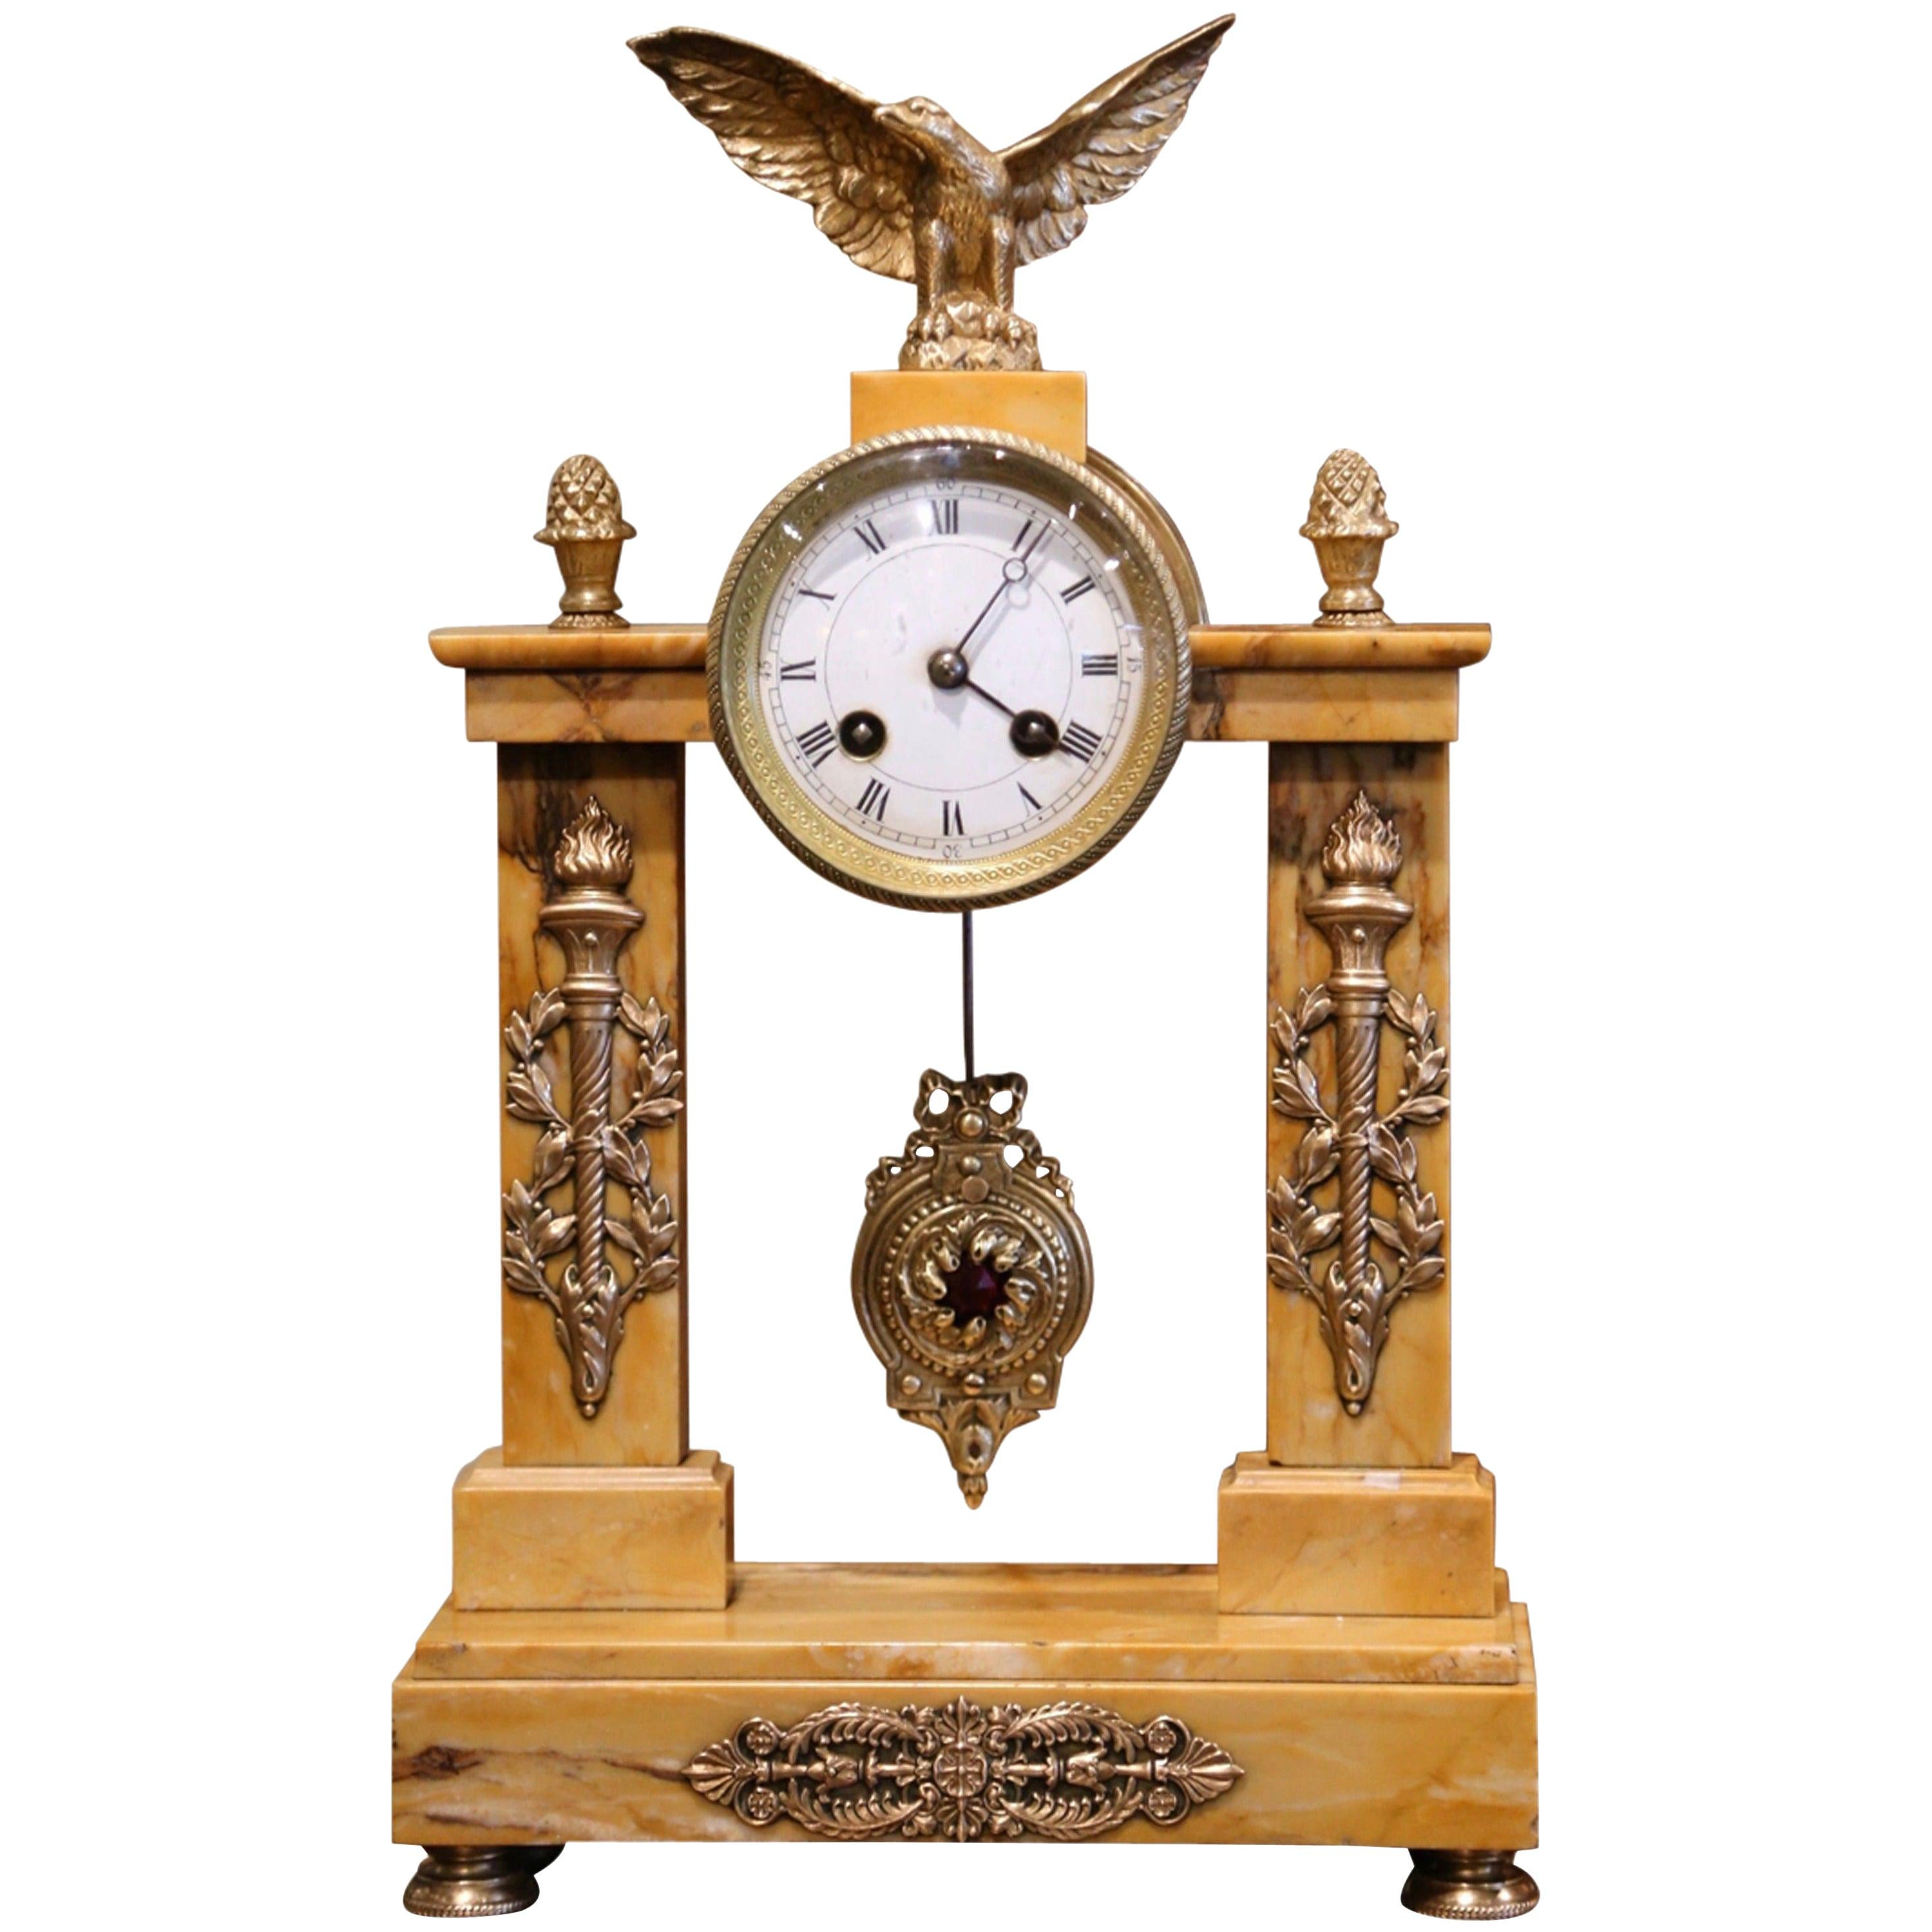 19th Century French Empire Marble and Bronze Mantel Clock from Bonnet & Pottier